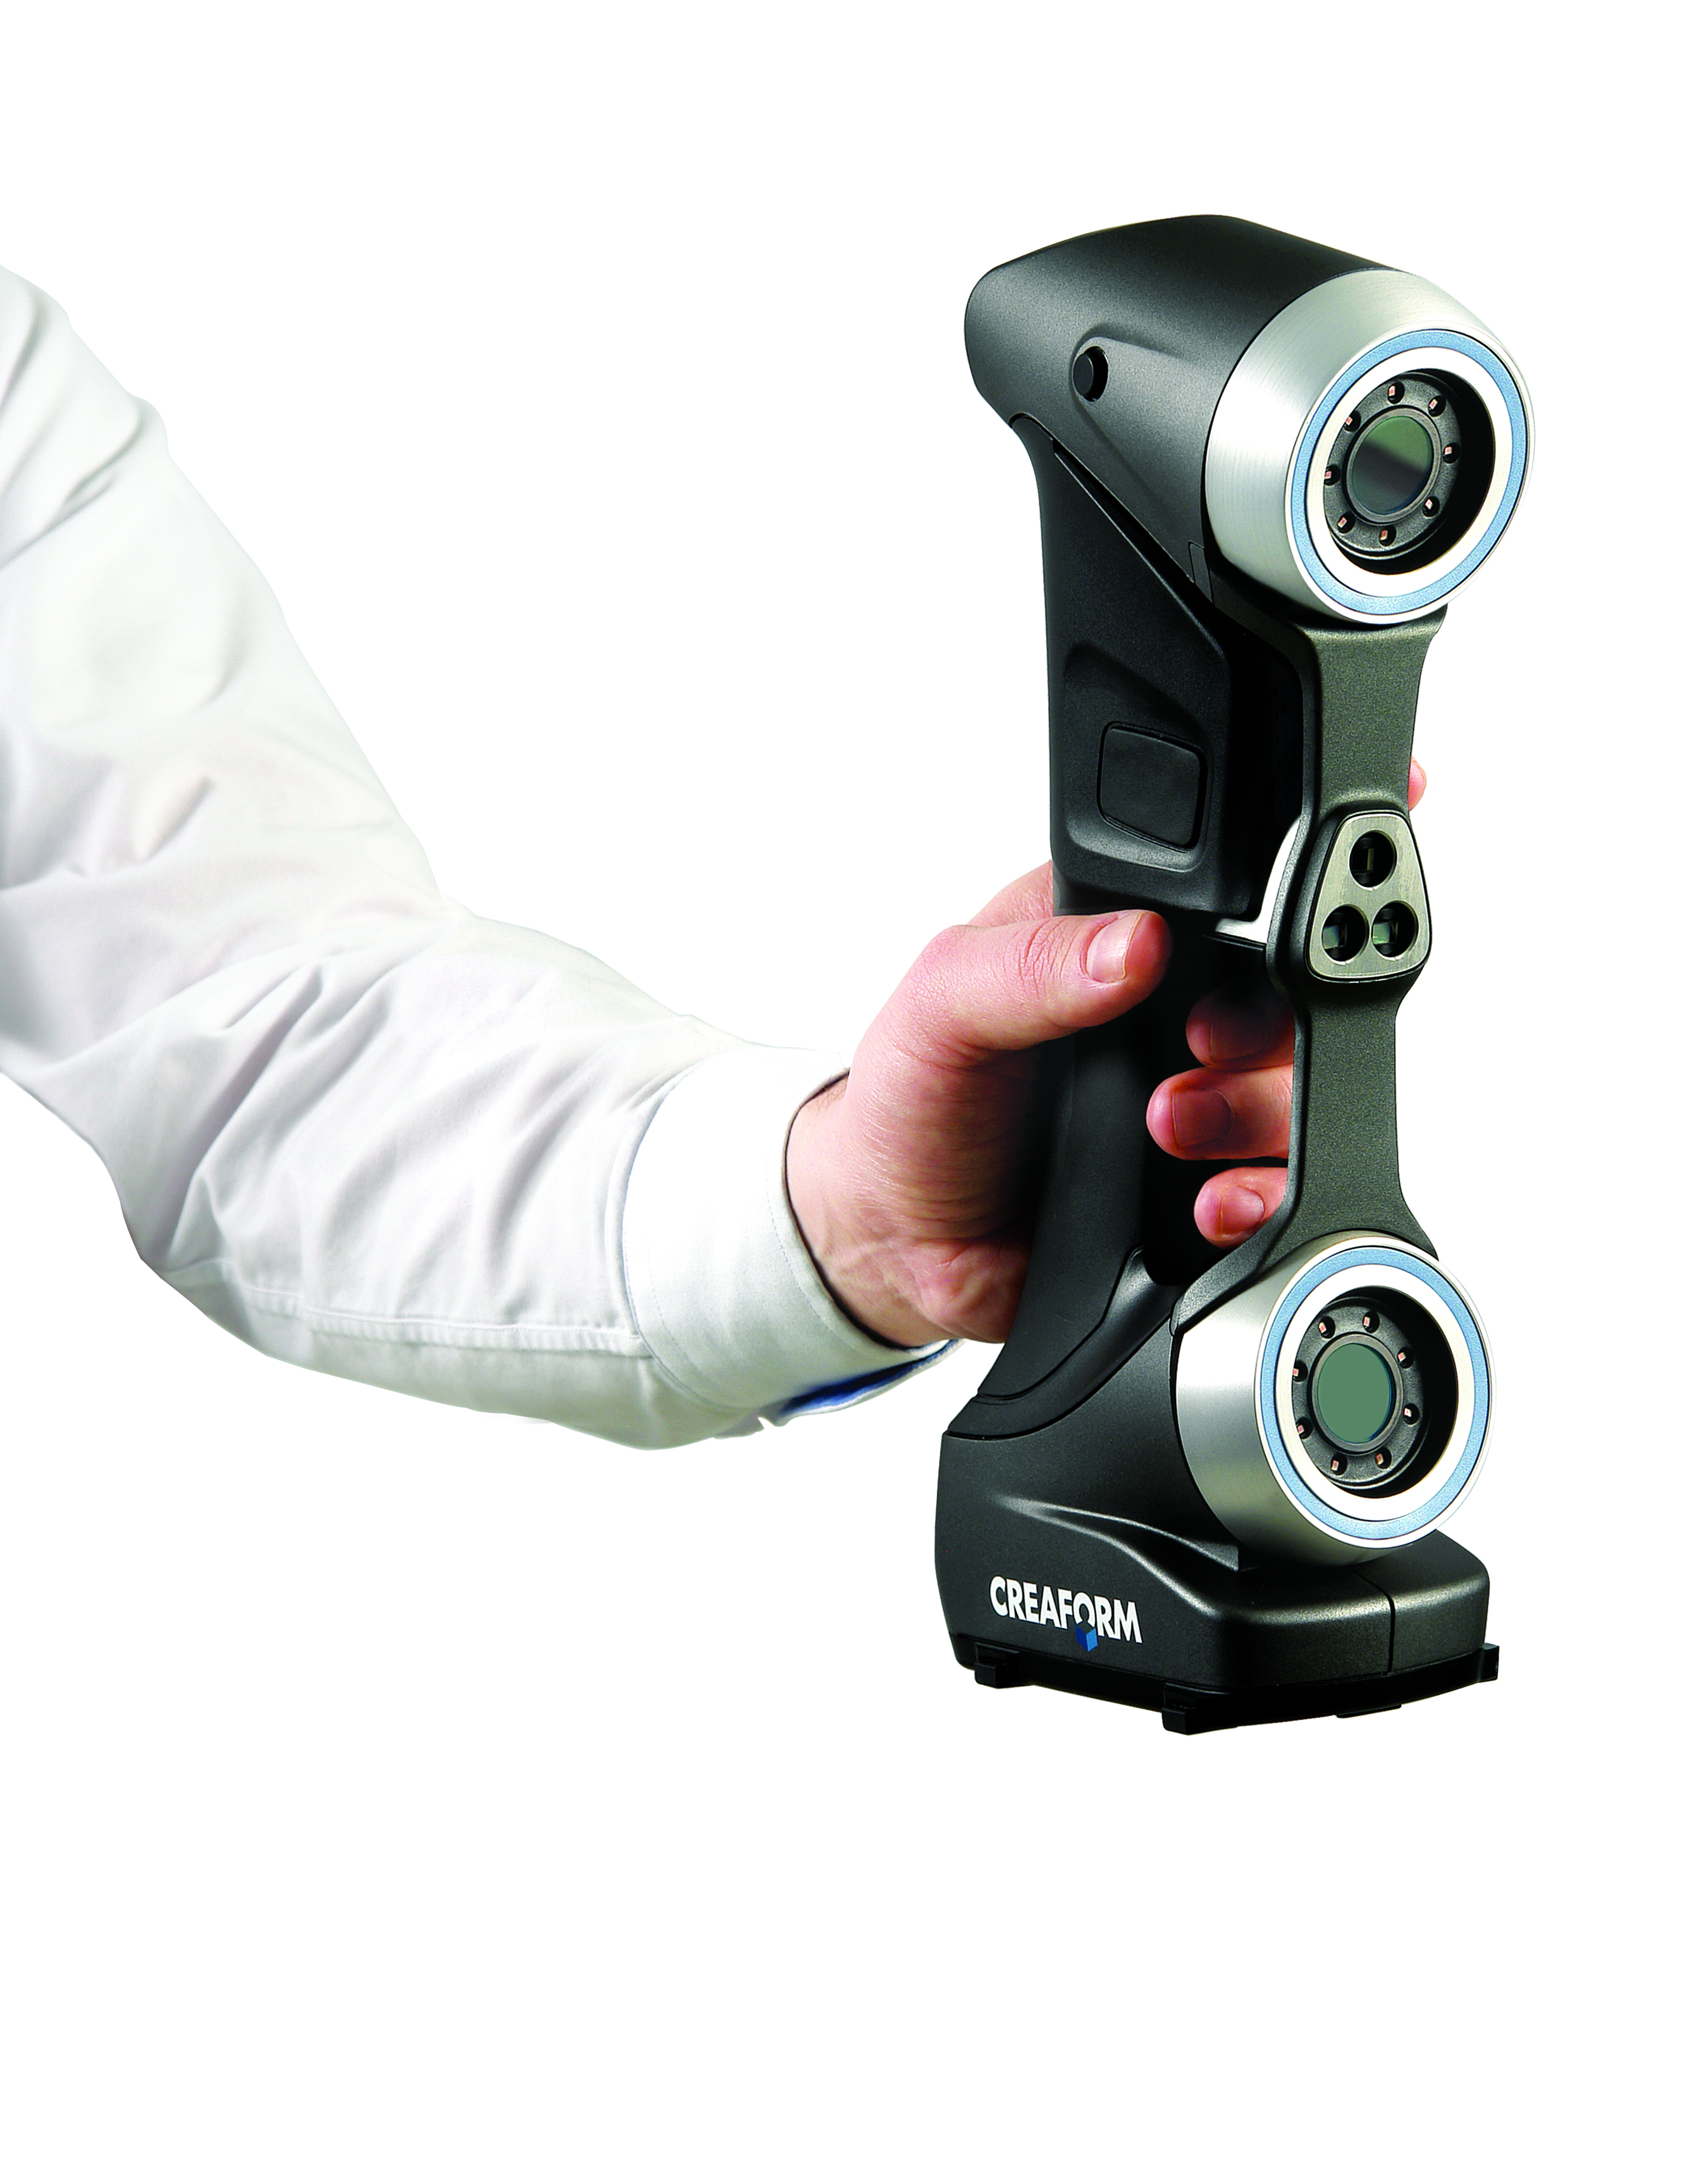 The next generation of HandySCAN 3D laser scanners, completely re-engineered for optimum speed, accuracy and portability.